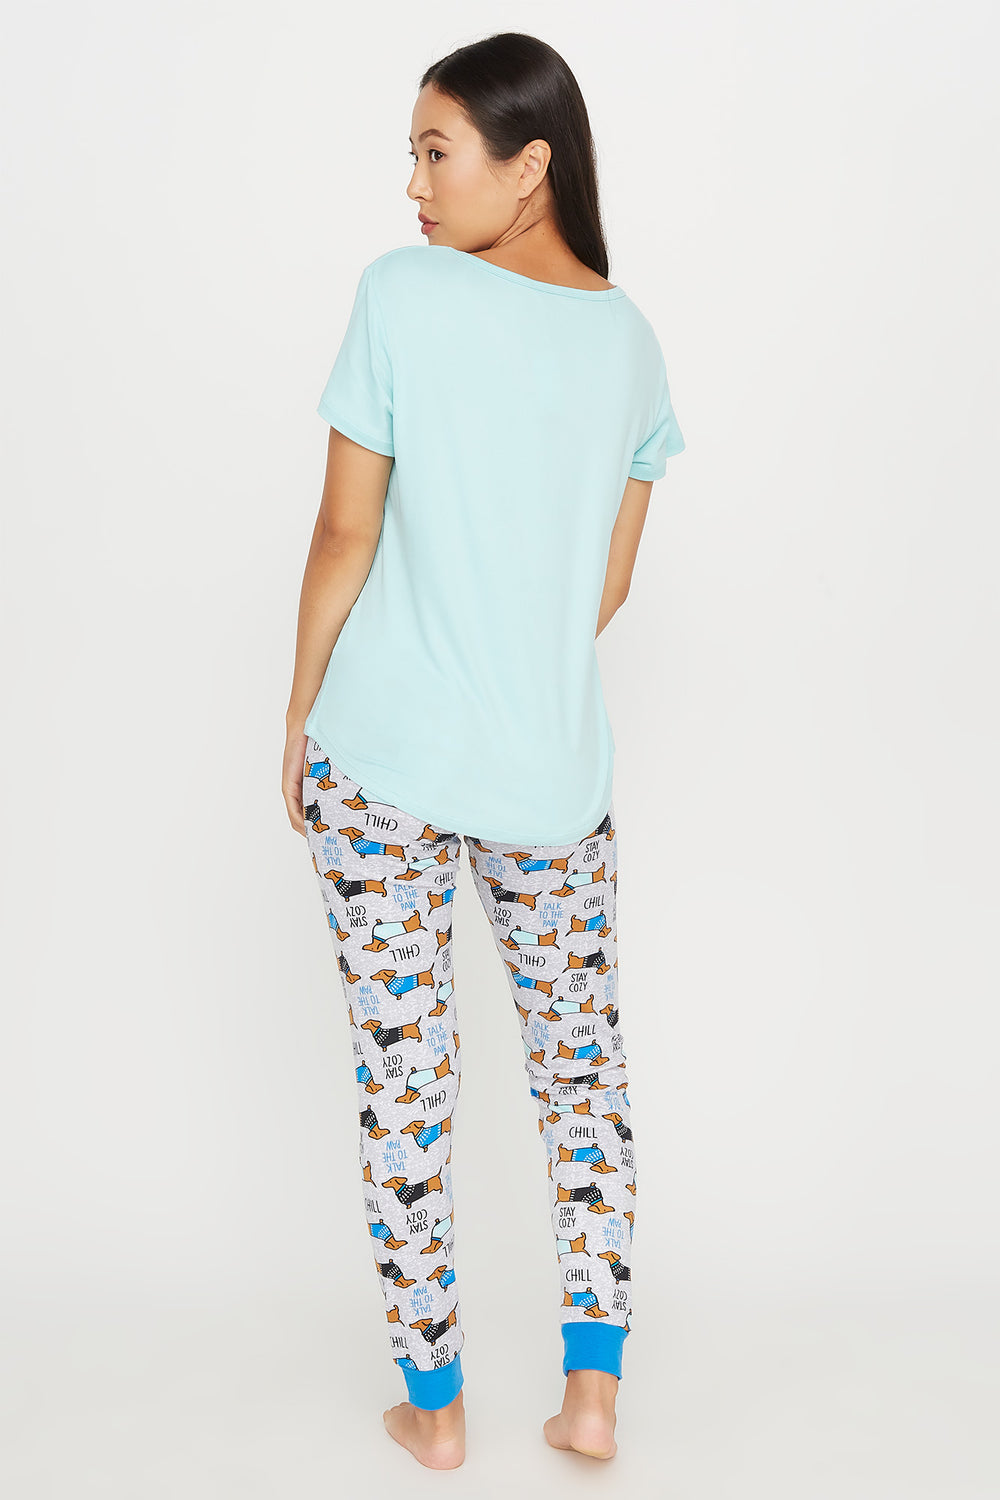 Soft Graphic Stay Cozy T-Shirt and Printed Legging Pajama Set Blue